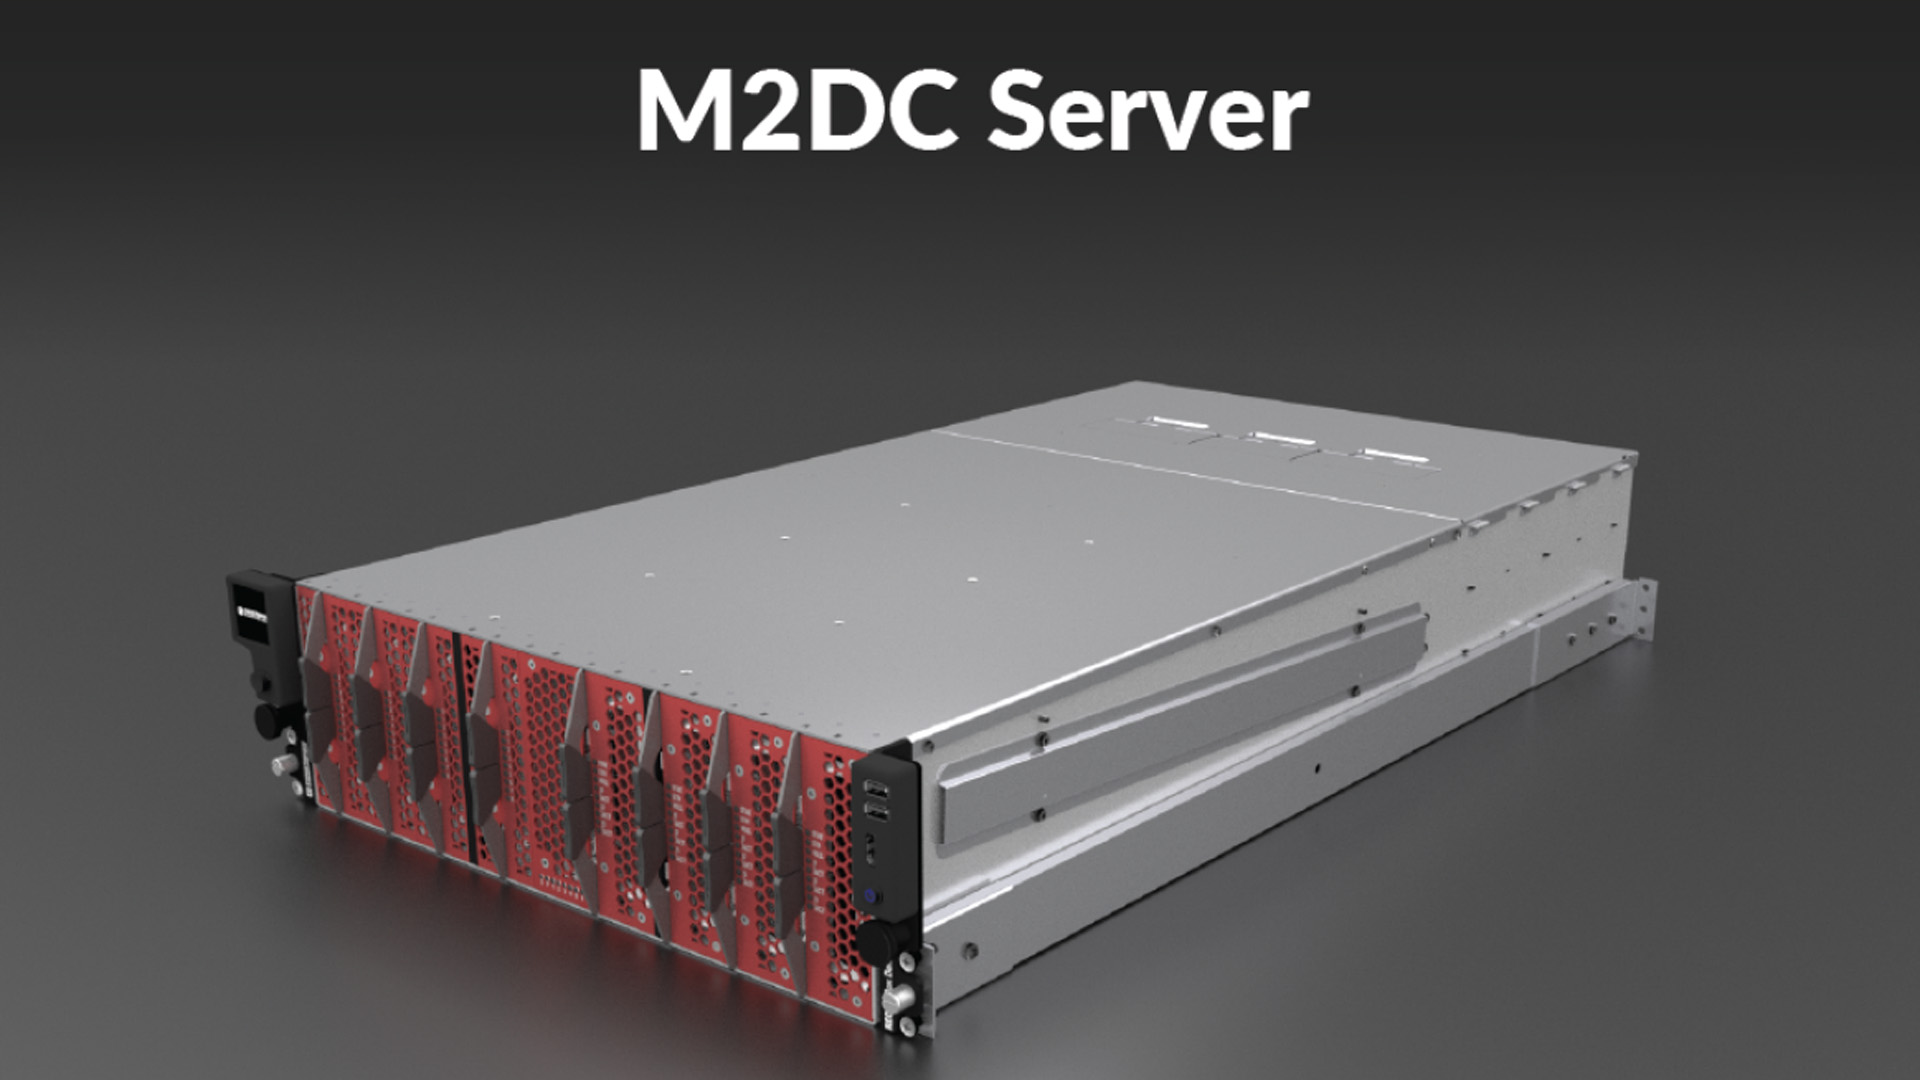 M2DC: The Future of Modular Microserver Technology